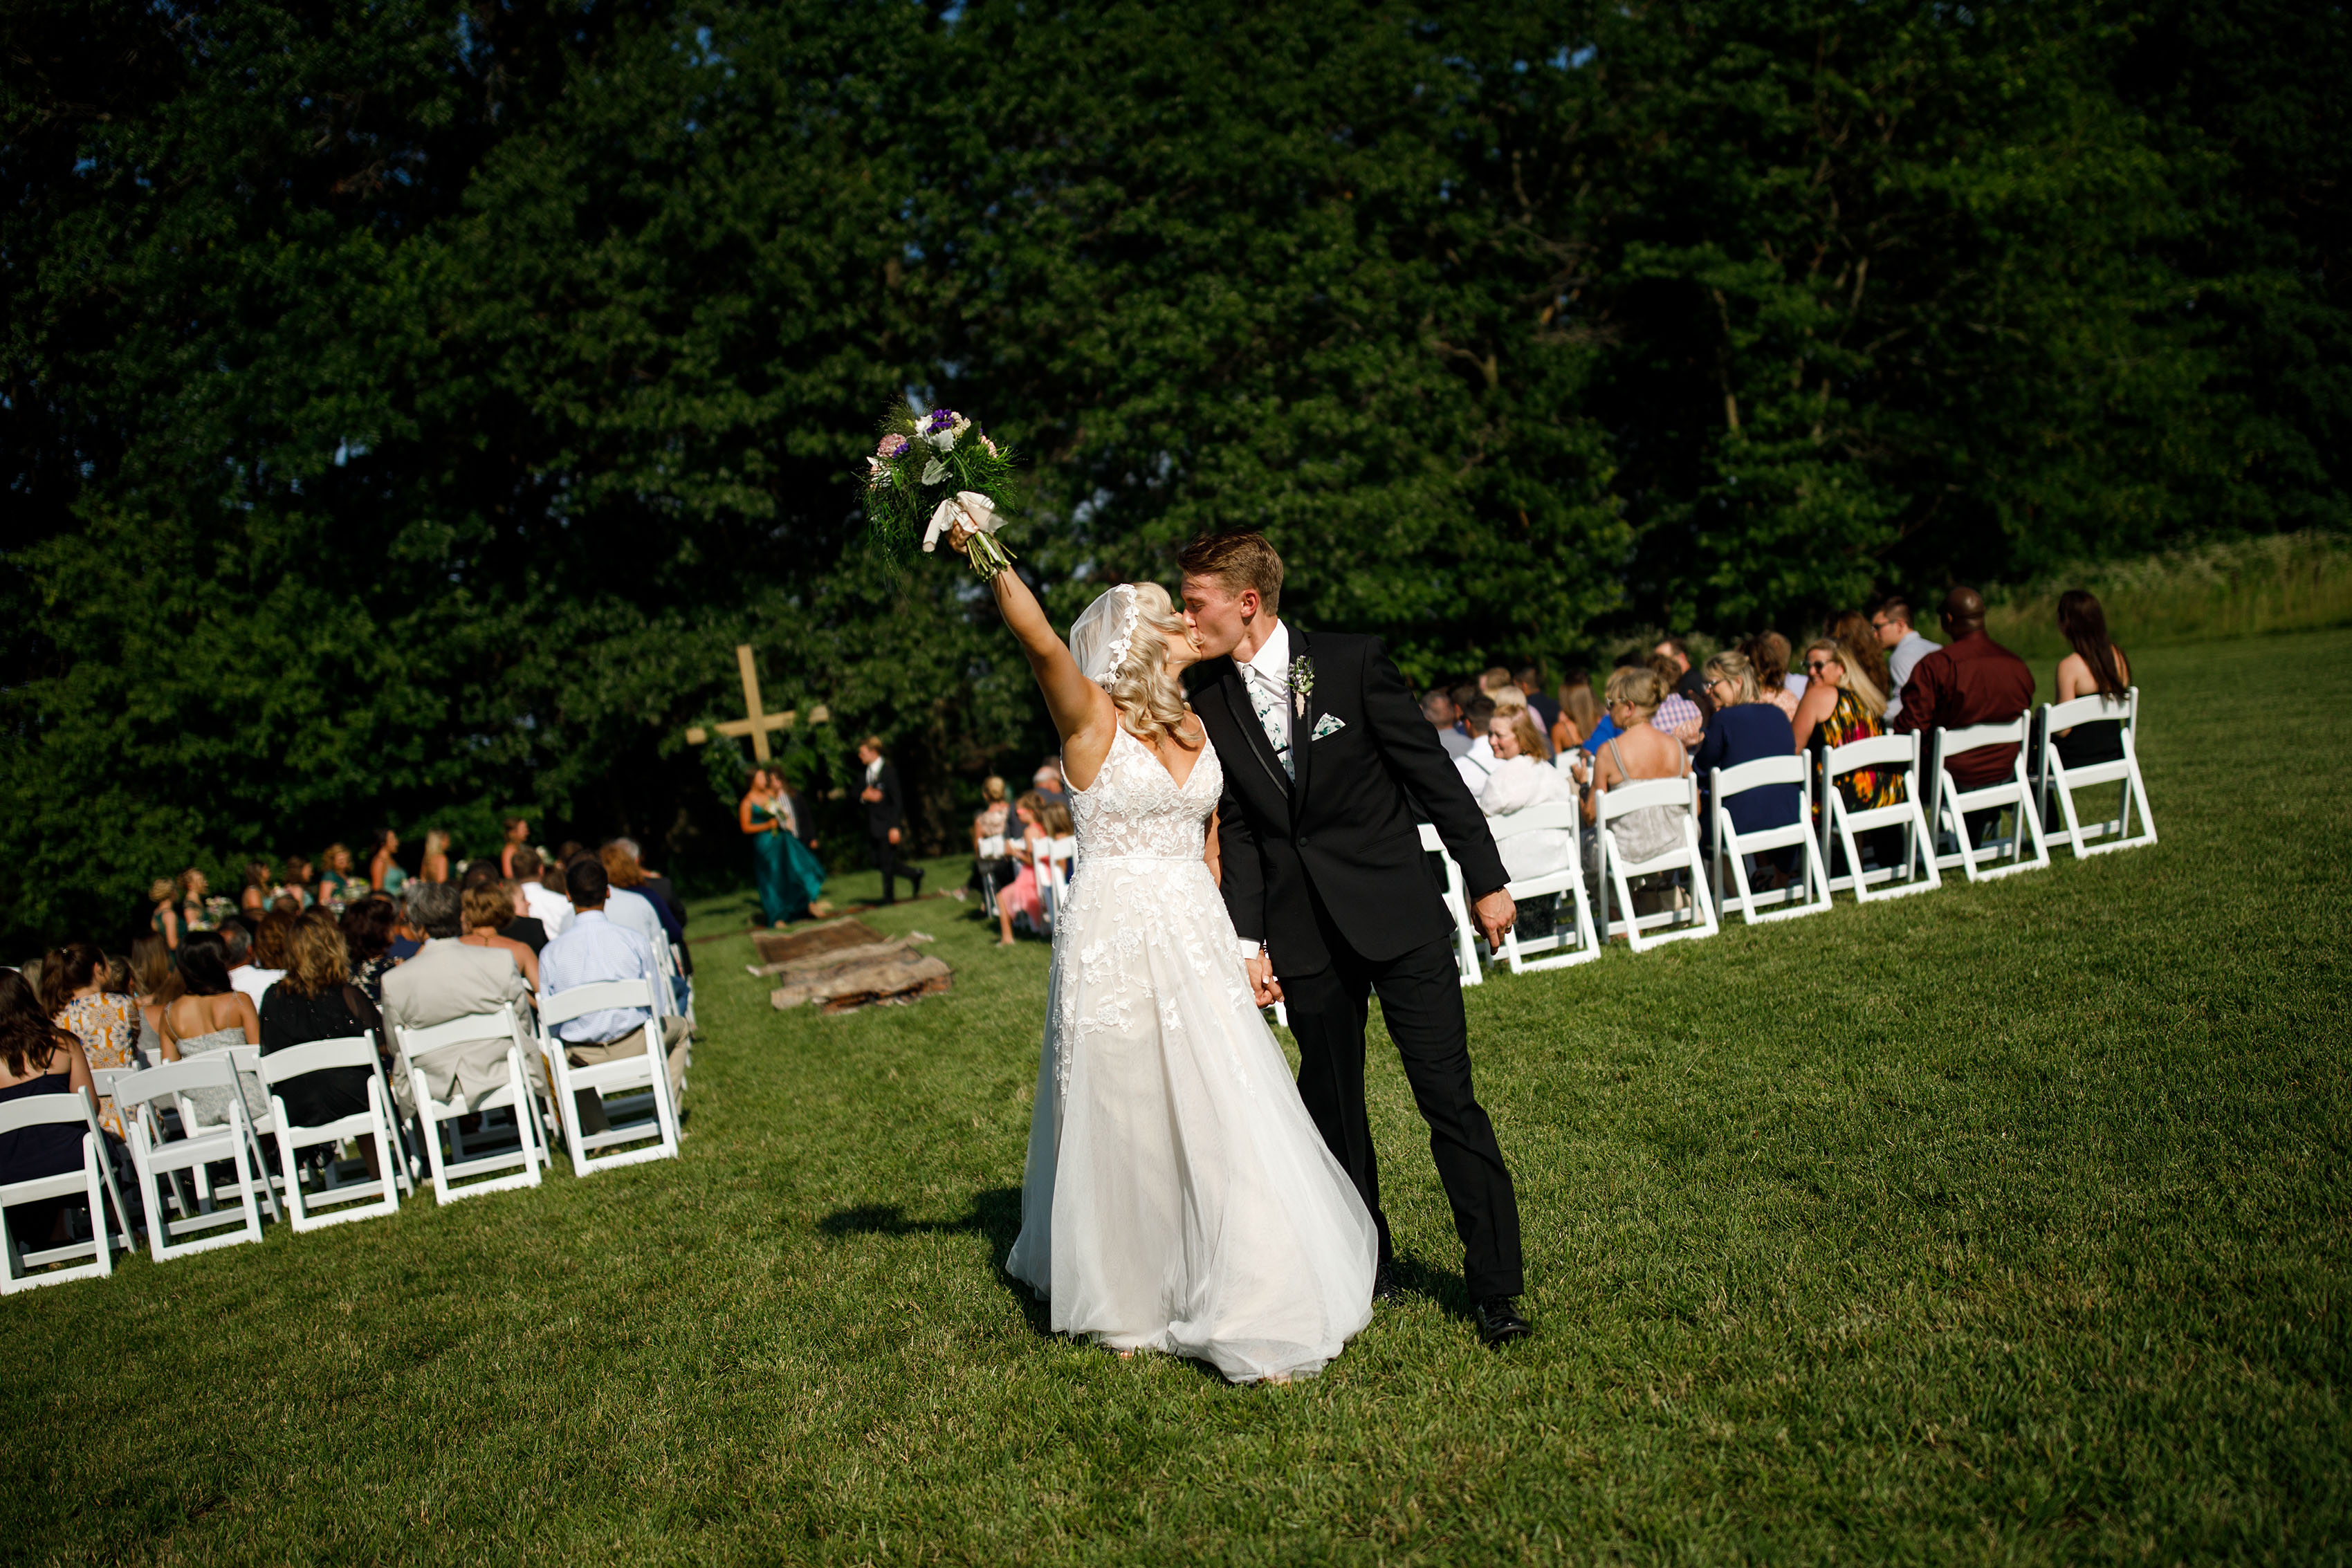 Jacob and Sienna kiss during their wedding in Missouri